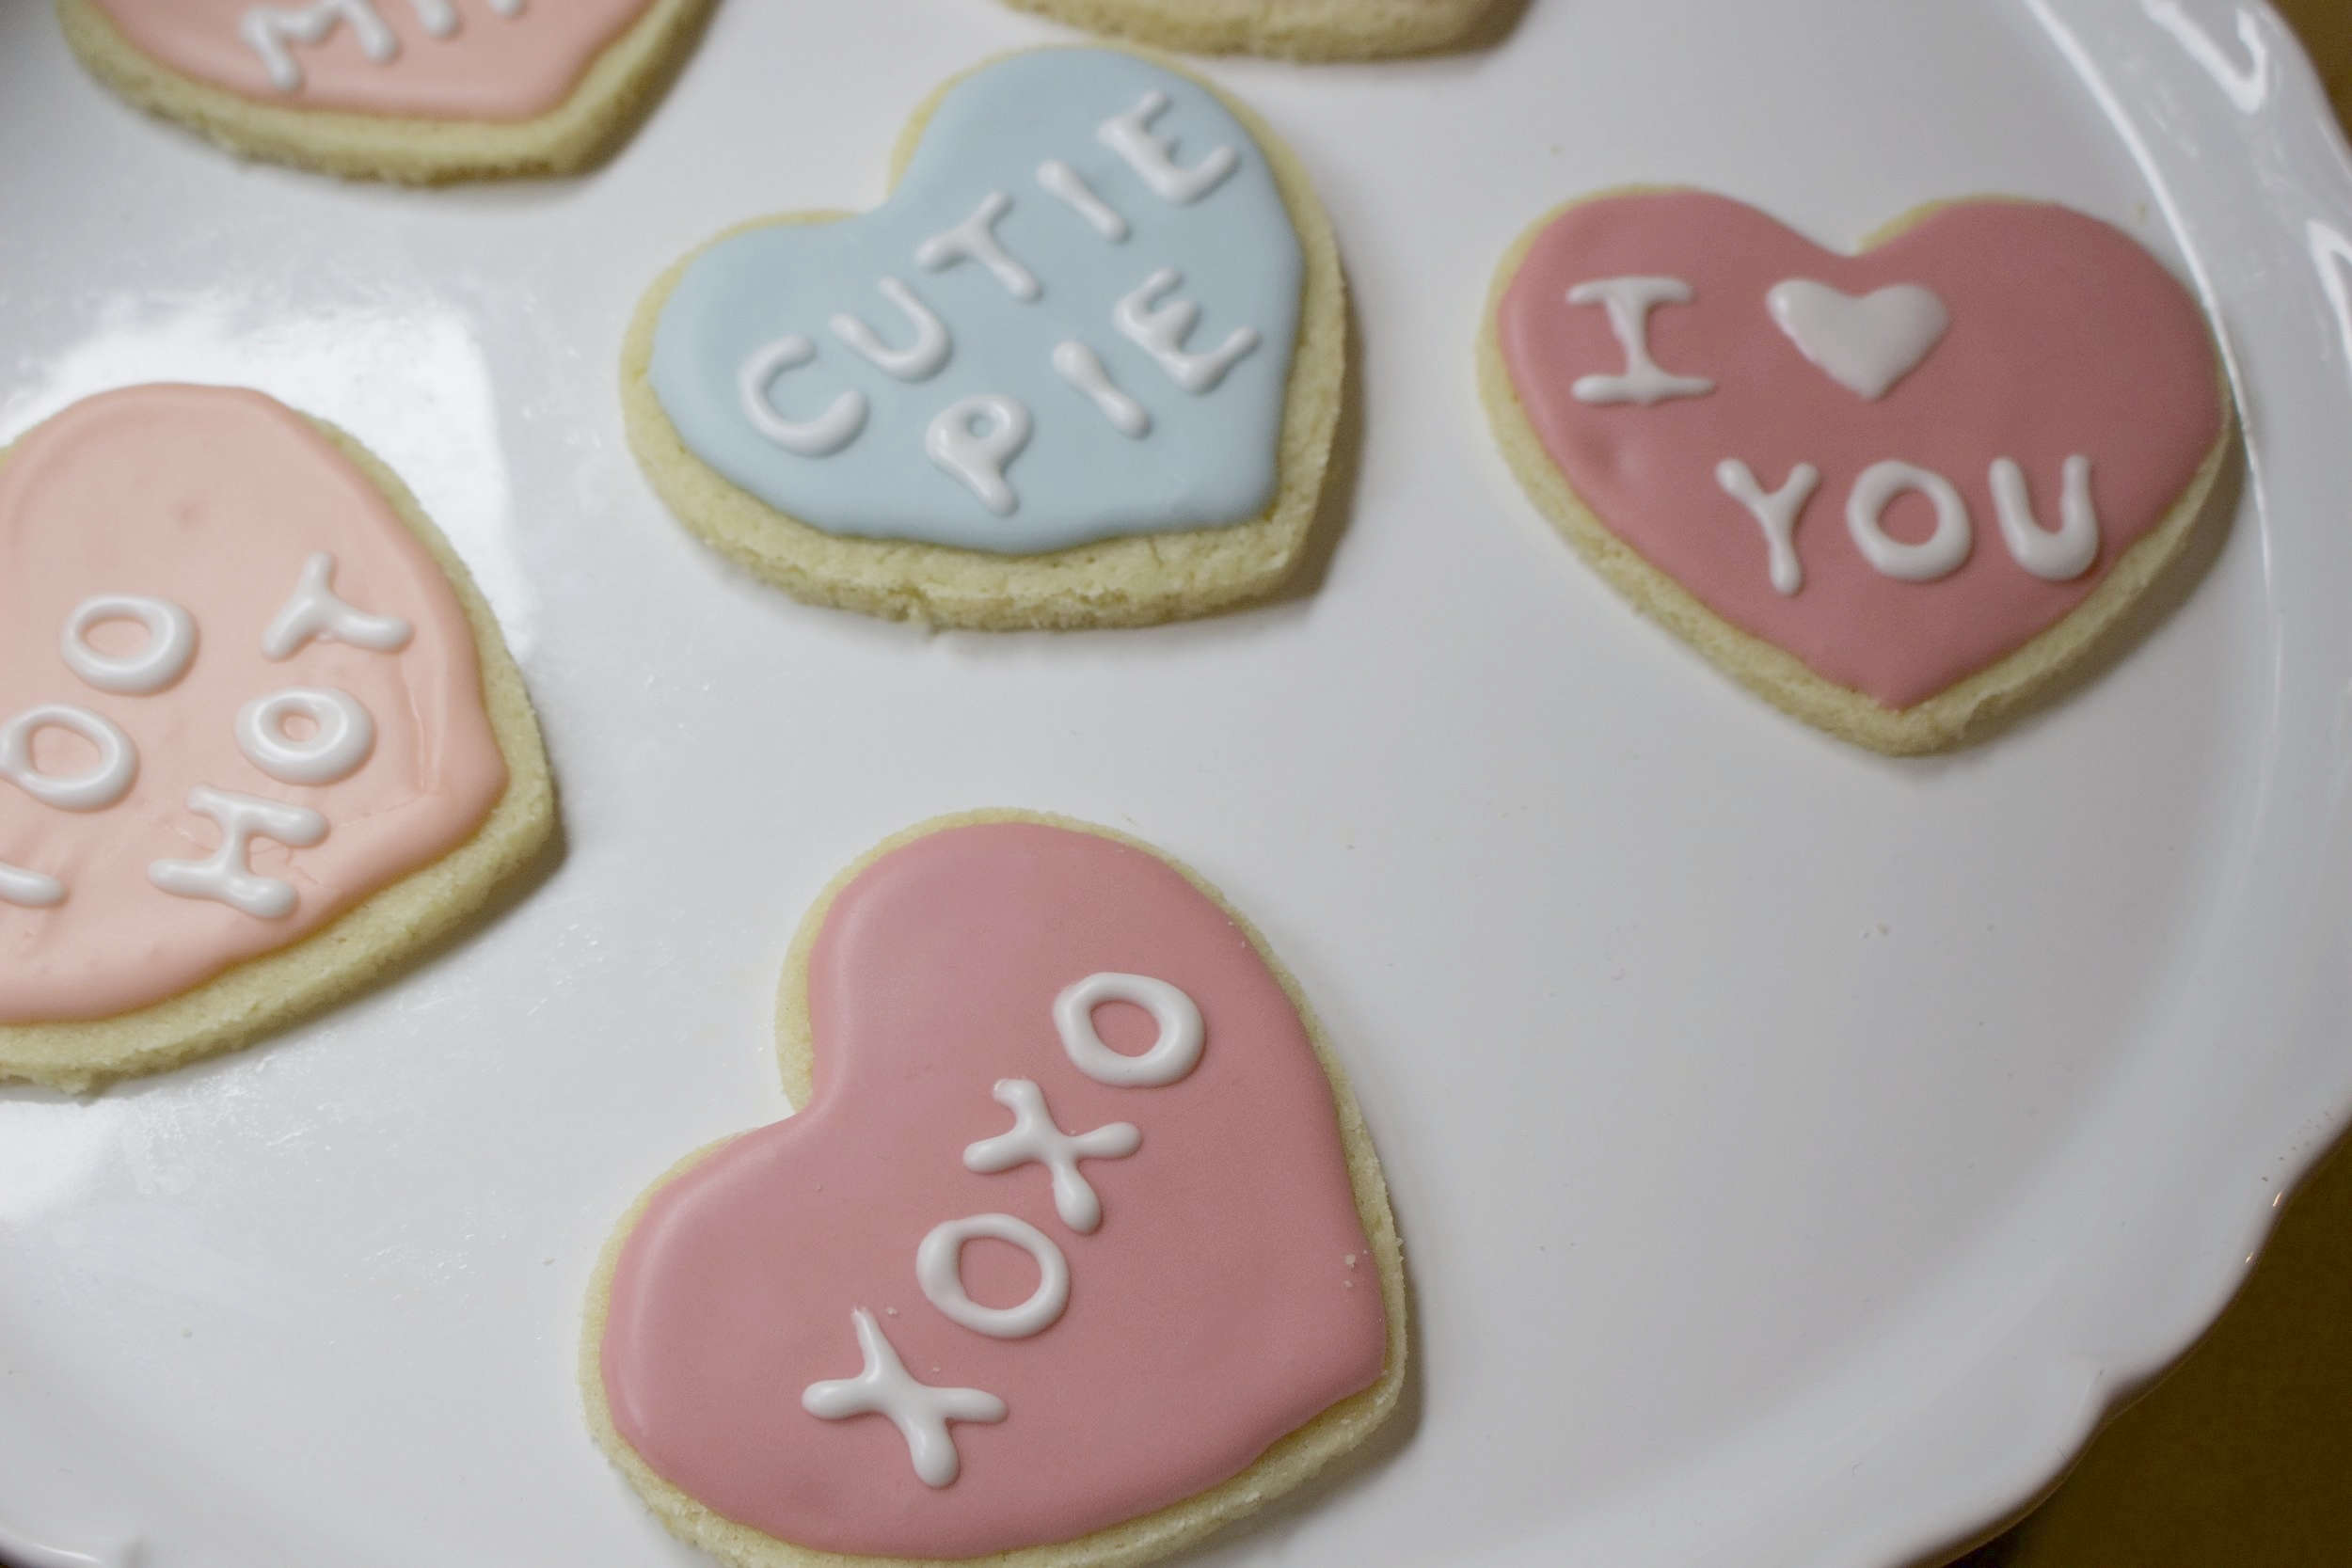 Inspired by my favourite Valentine treat: Conversation Hearts